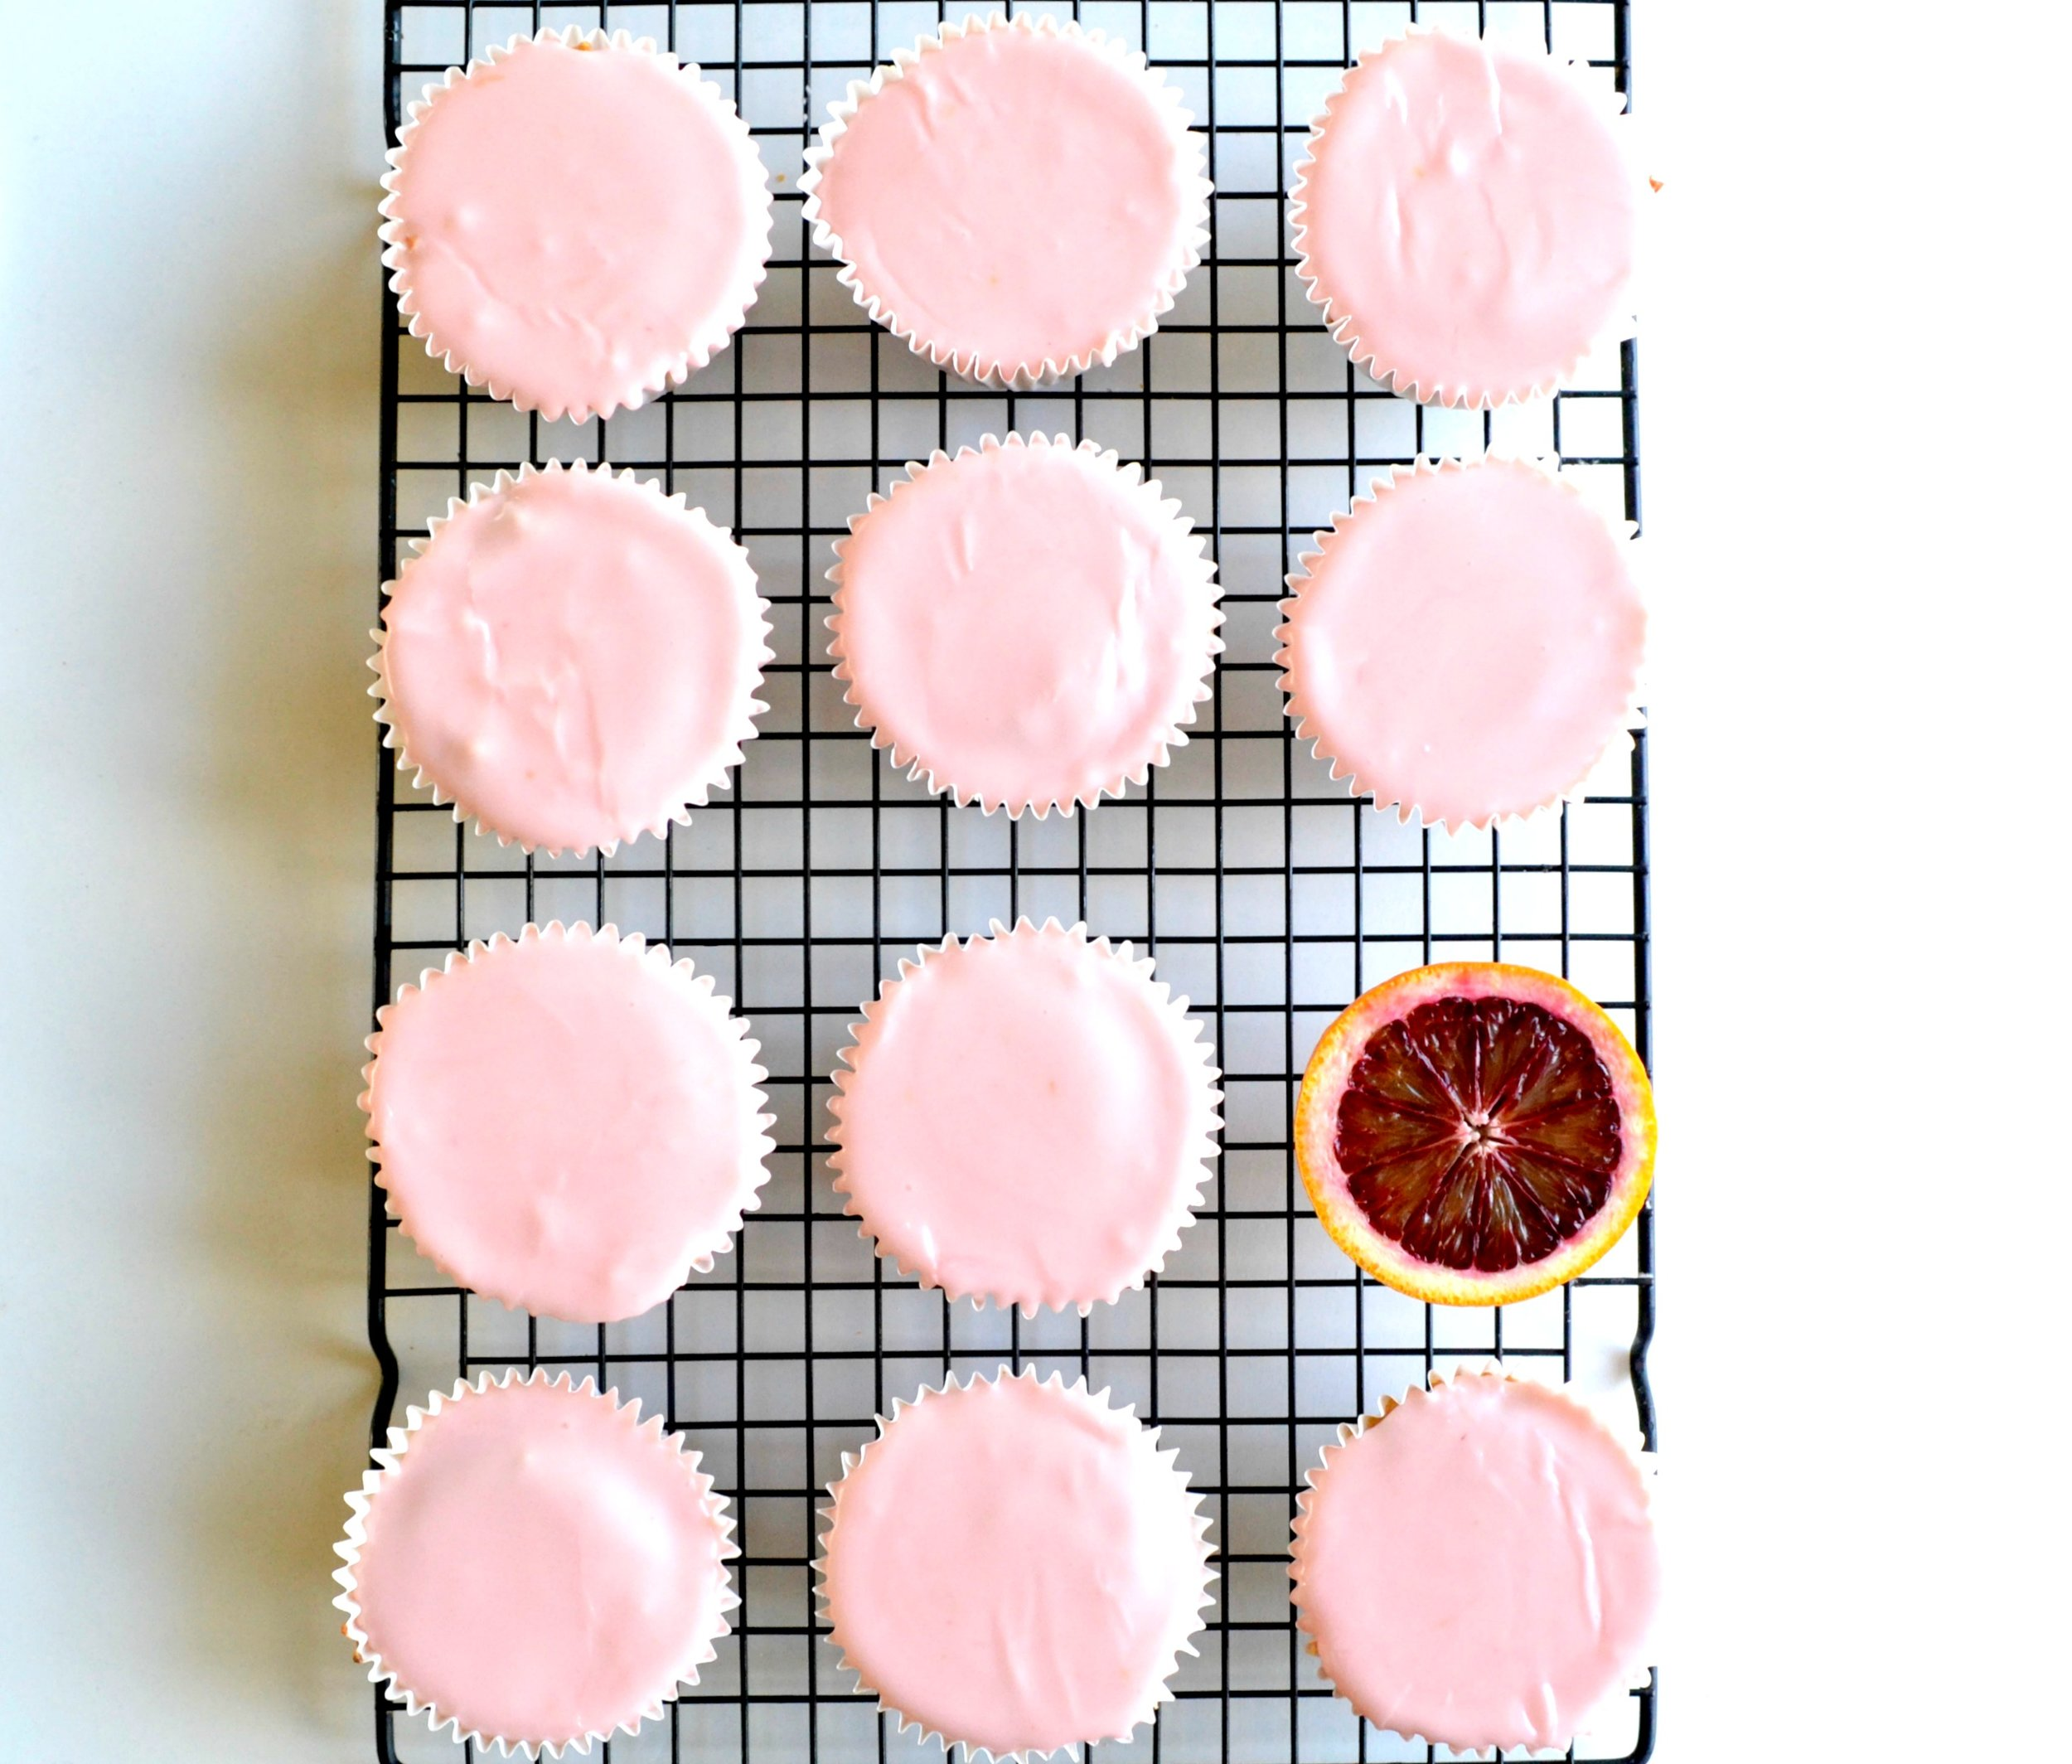 Blood oranges are in season. These blood orange fairy cakes or cupcakes are beautifully zingy with the addition of zest and juice from the orange.